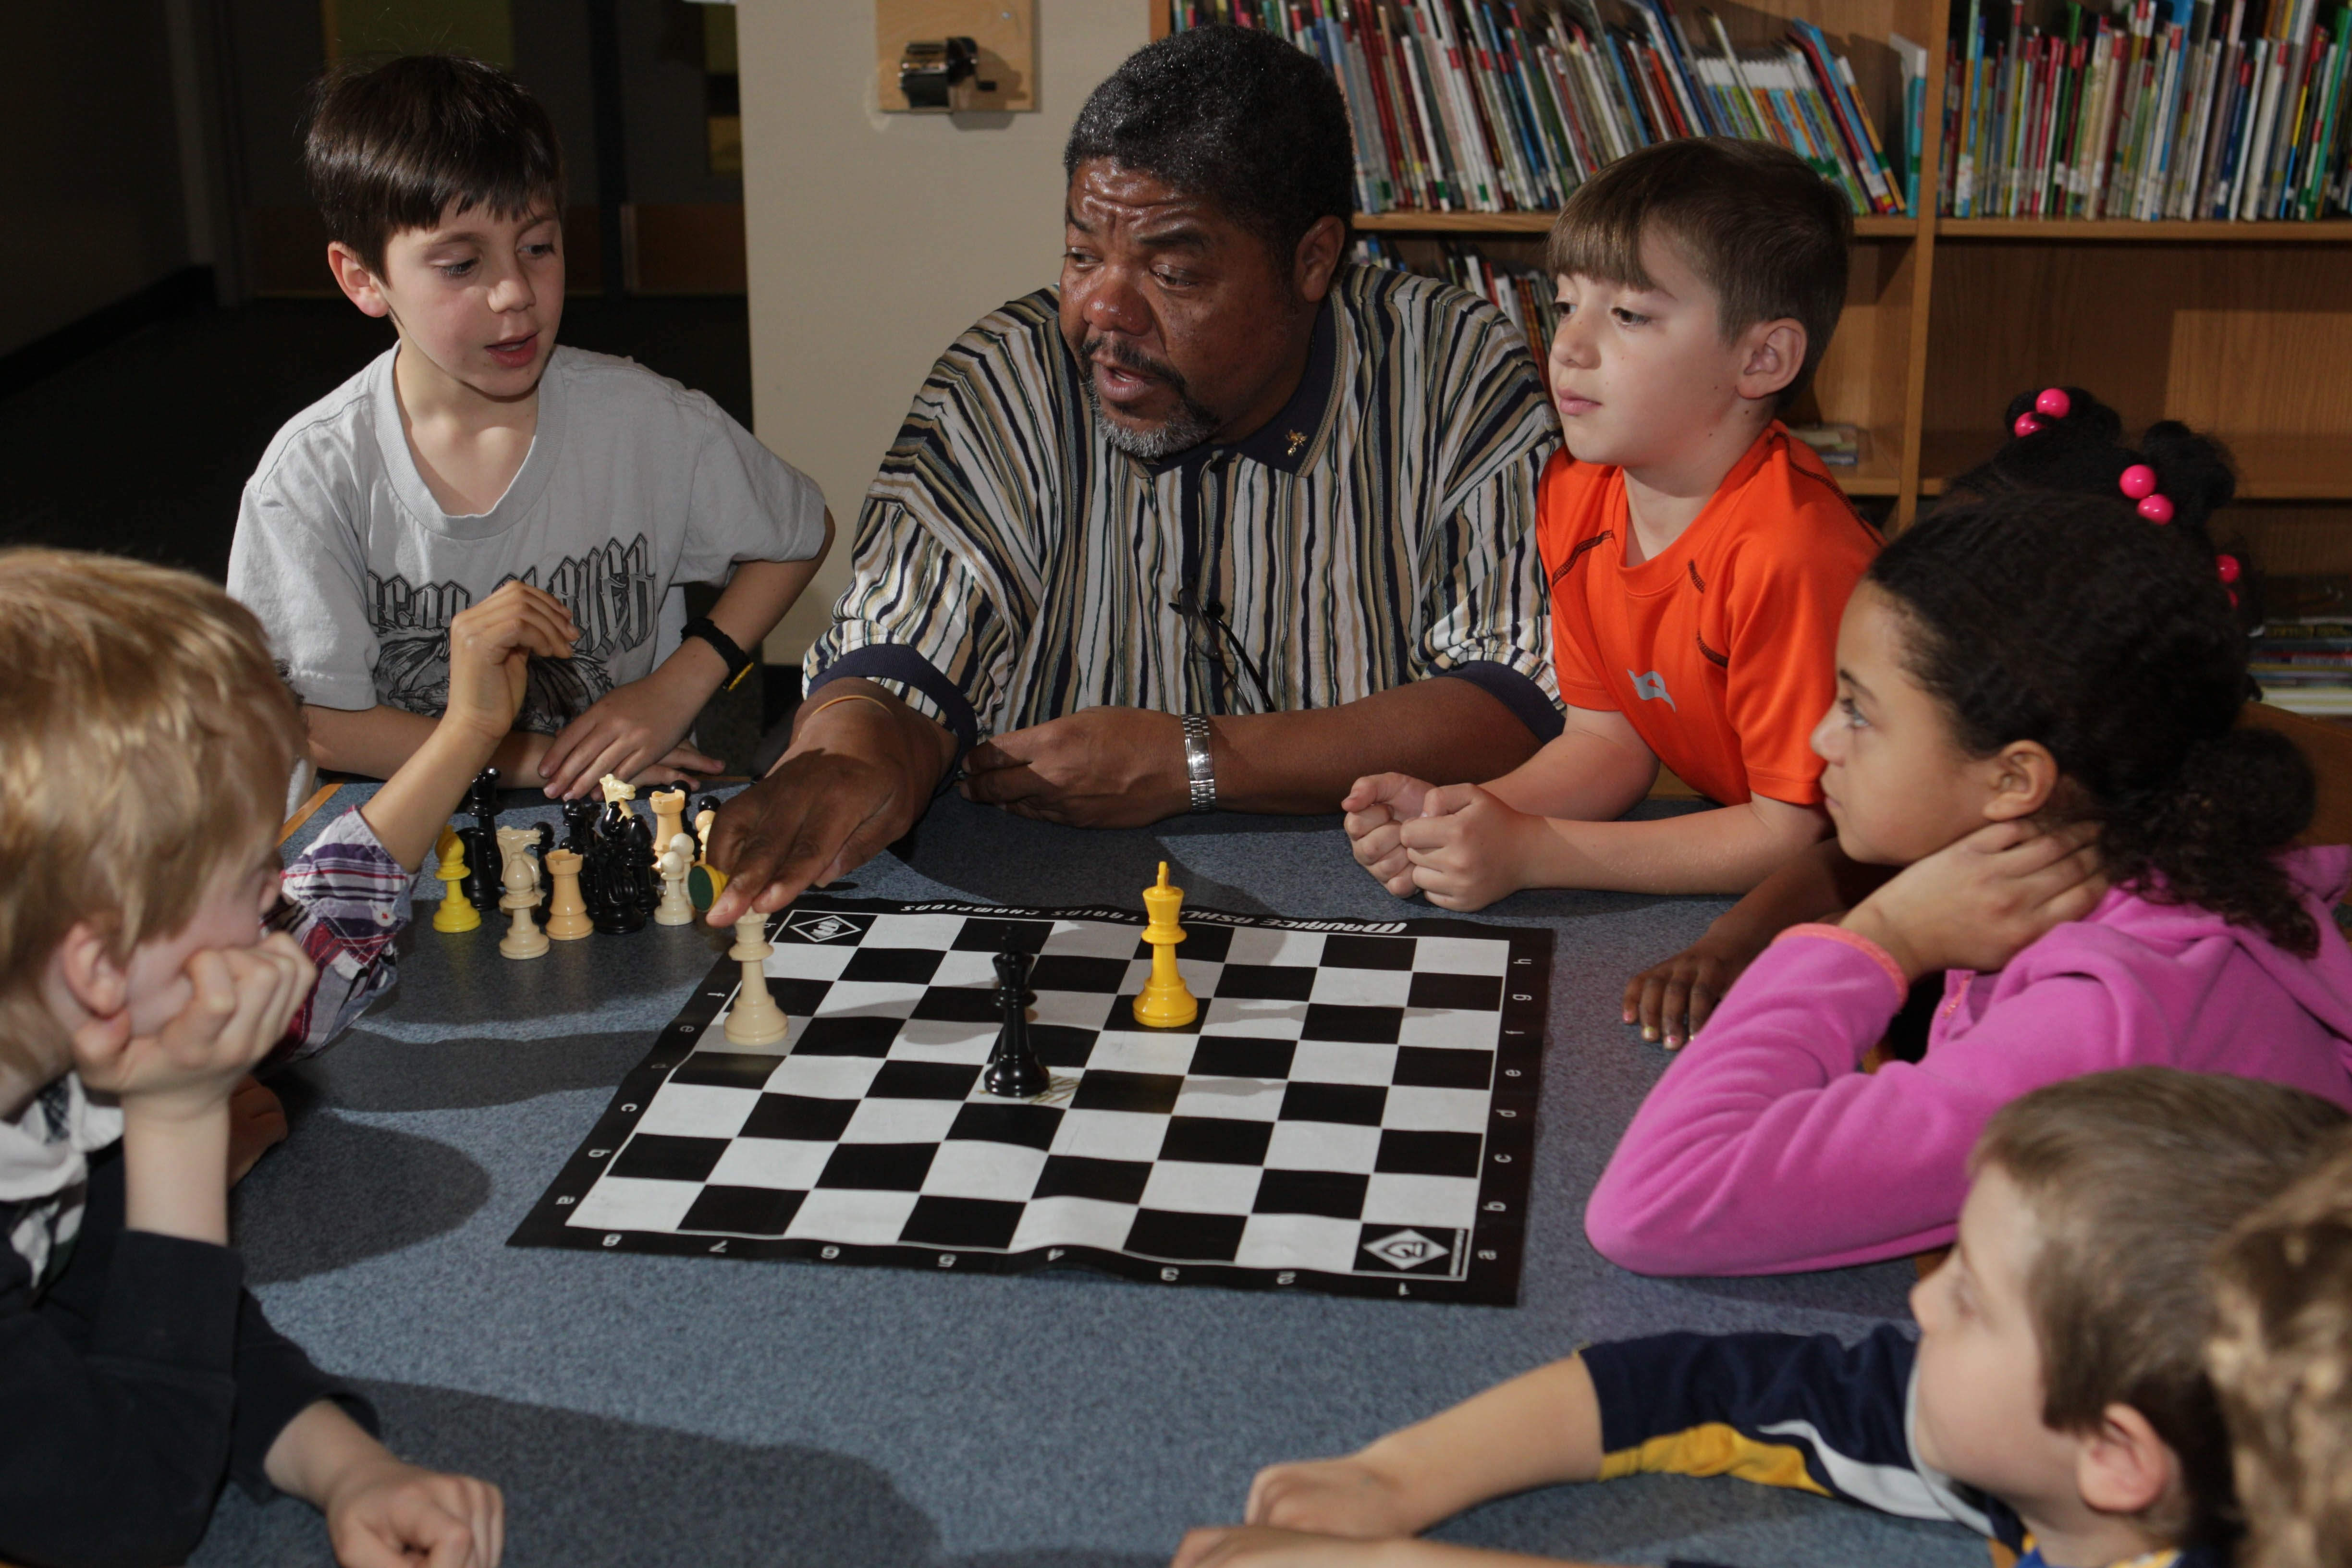 Chessmaster Michael McDuffie of Williamsville coaches kids and adults on the finer points of chess.  Nearly every day of the week, he's at a school, library or community center to teach people how to play chess and encourage them to compete.  Here he's with Wise Scholastic Chess Club for grades k-4 in an after school program two days a week at Olmsted School #64,Wednesday, March 19, 2014. There are about 20 kids in the club. Here, he gives a group lesson. (Sharon Cantillon/Buffalo News)